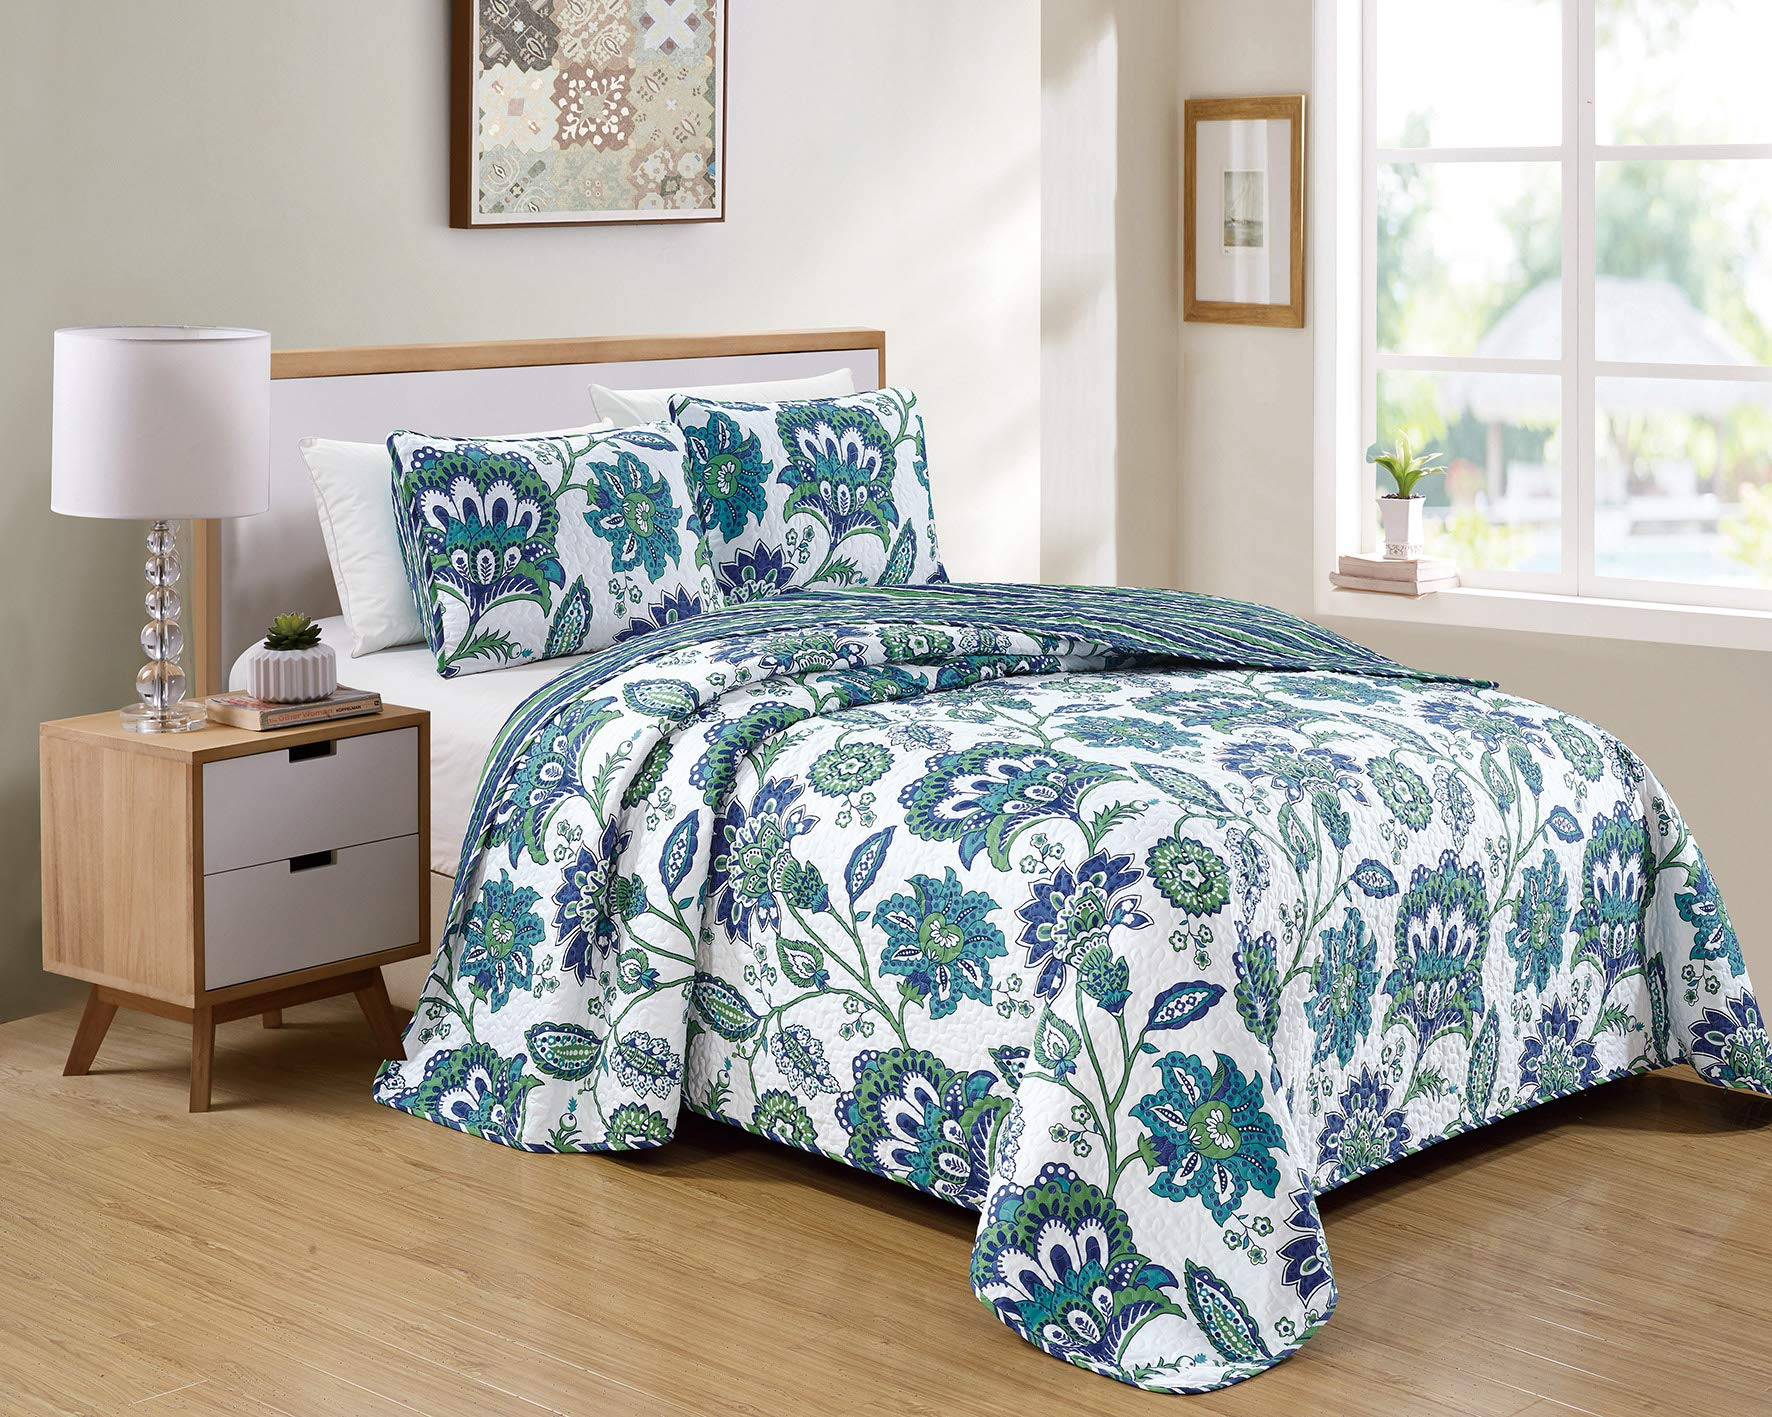 Kids Zone Home Linen 3 Piece Full/Queen Over Size Bedspread Set Flowers Print White Blue Green by Kids Zone Home Linen